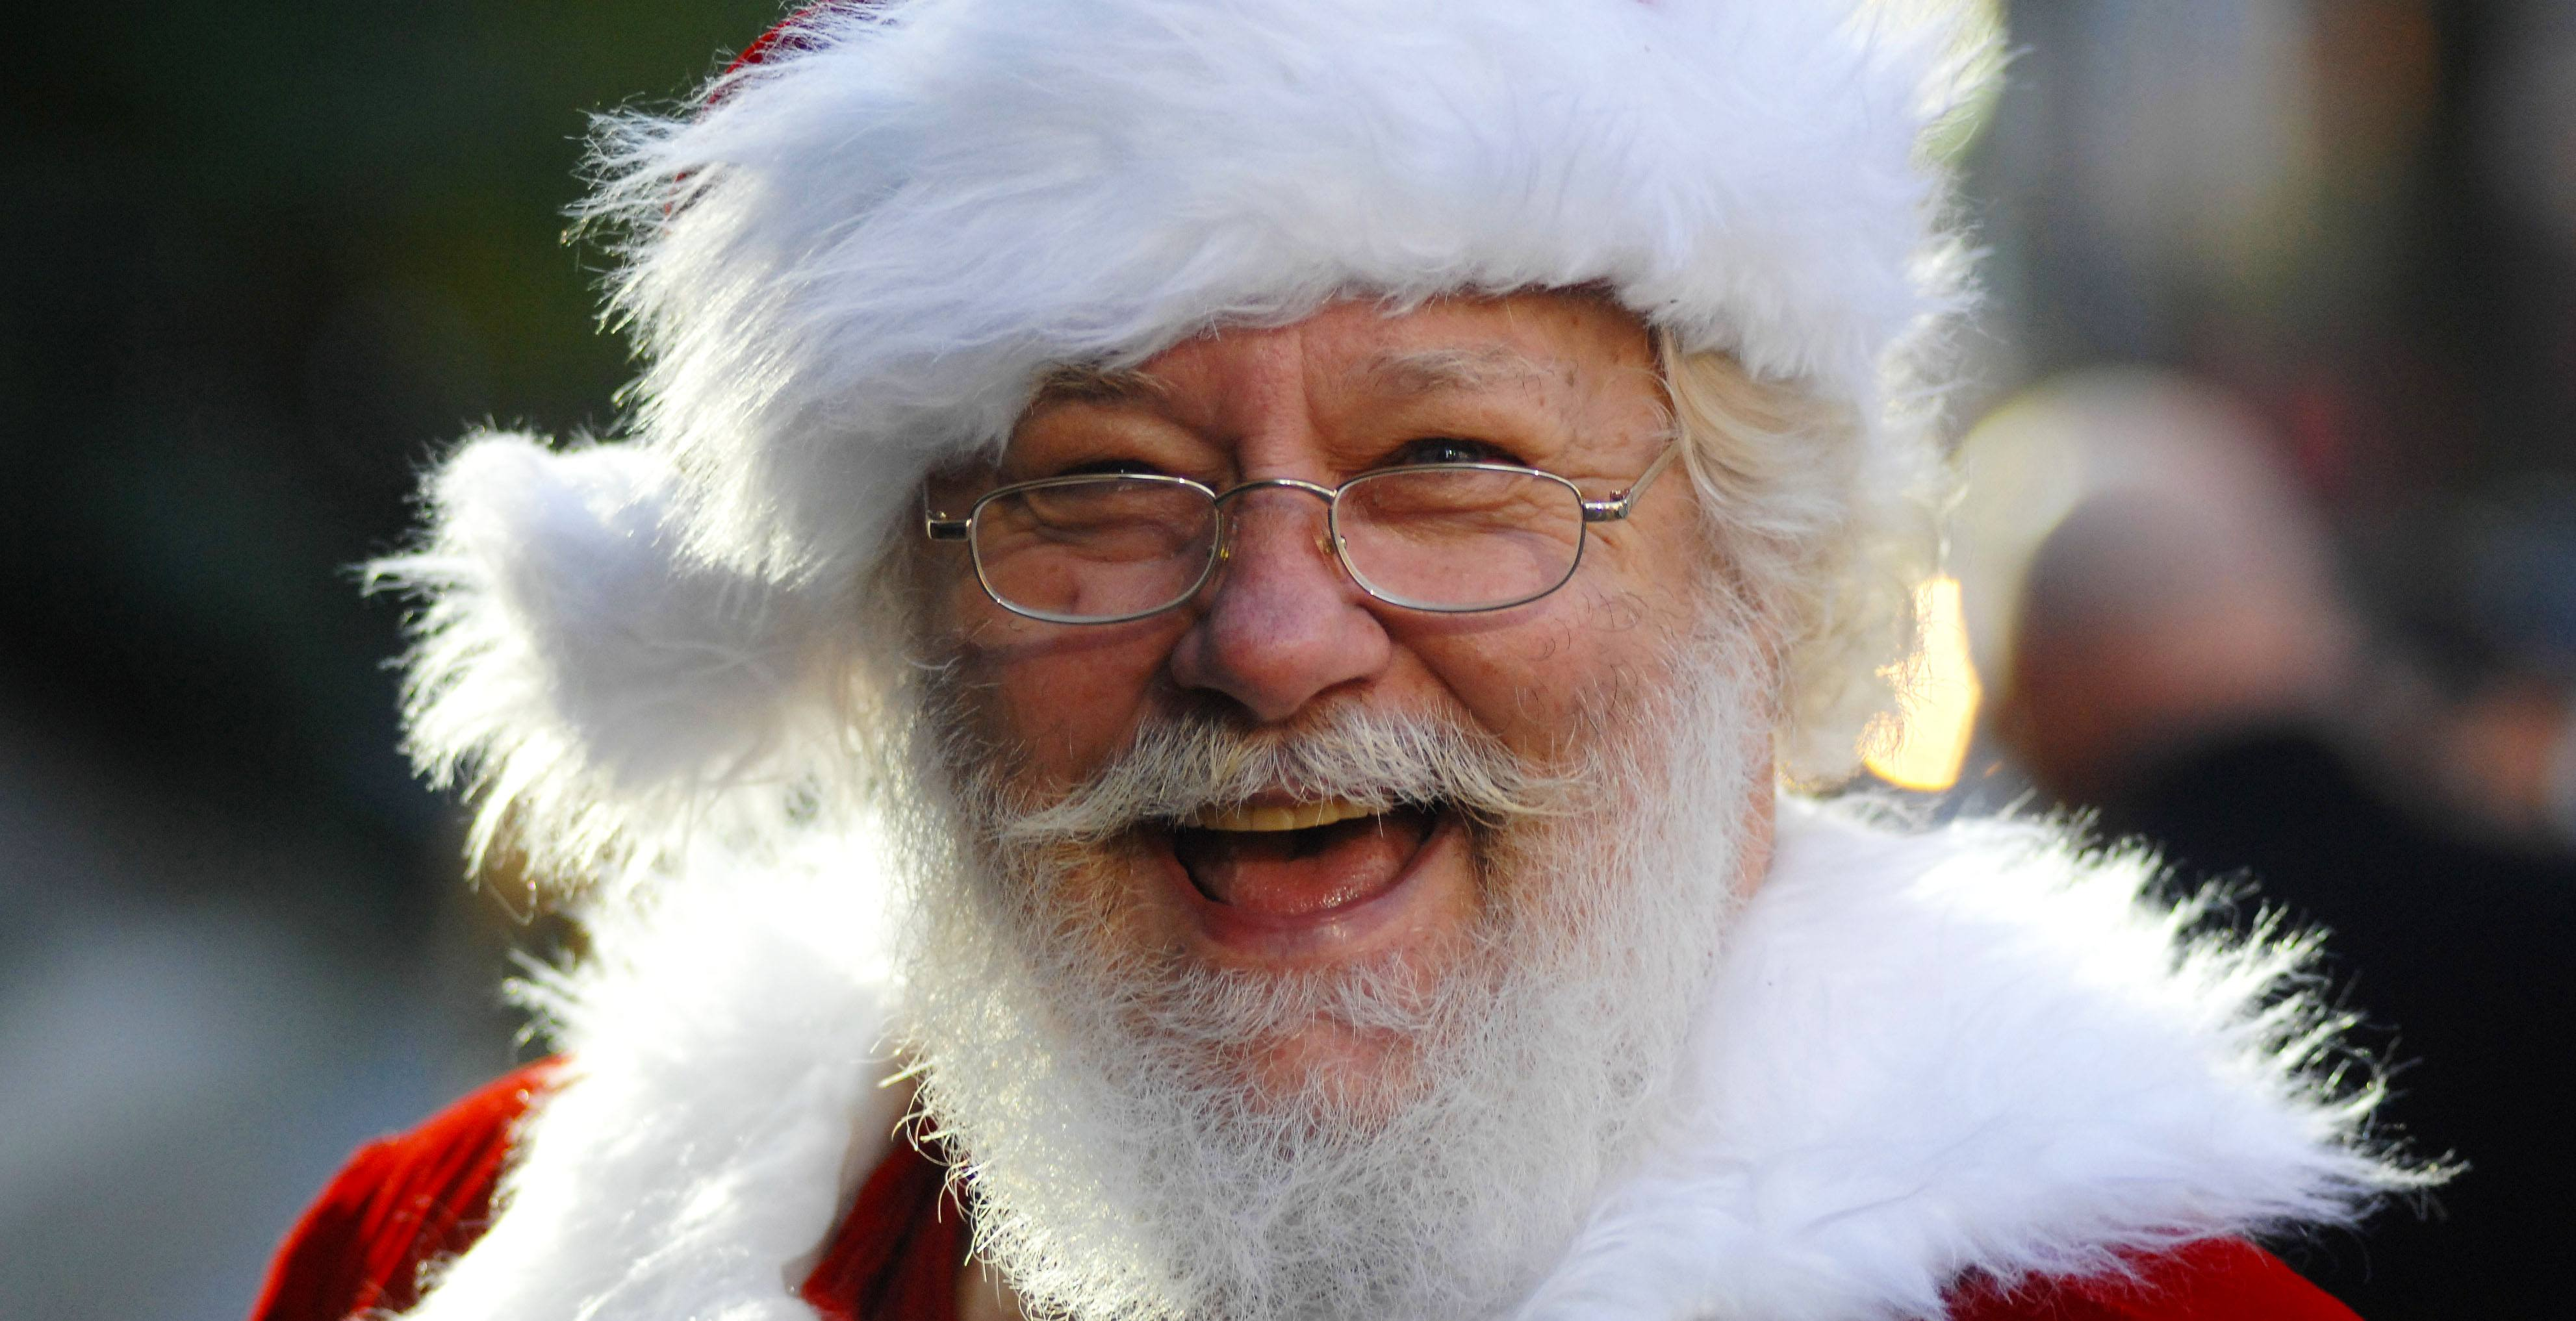 Santa Claus at a previous parade in Vancouver (Sergei Bachlakov/Shutterstock)